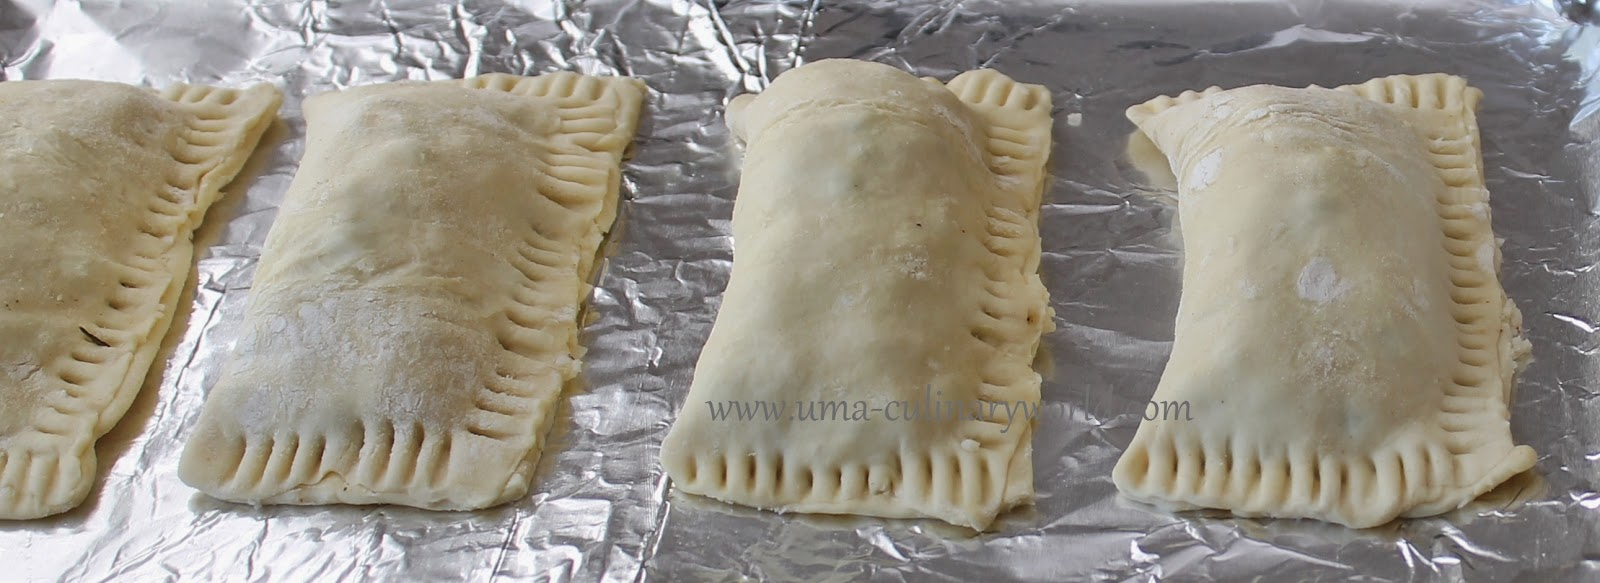 Stuffed Pastry